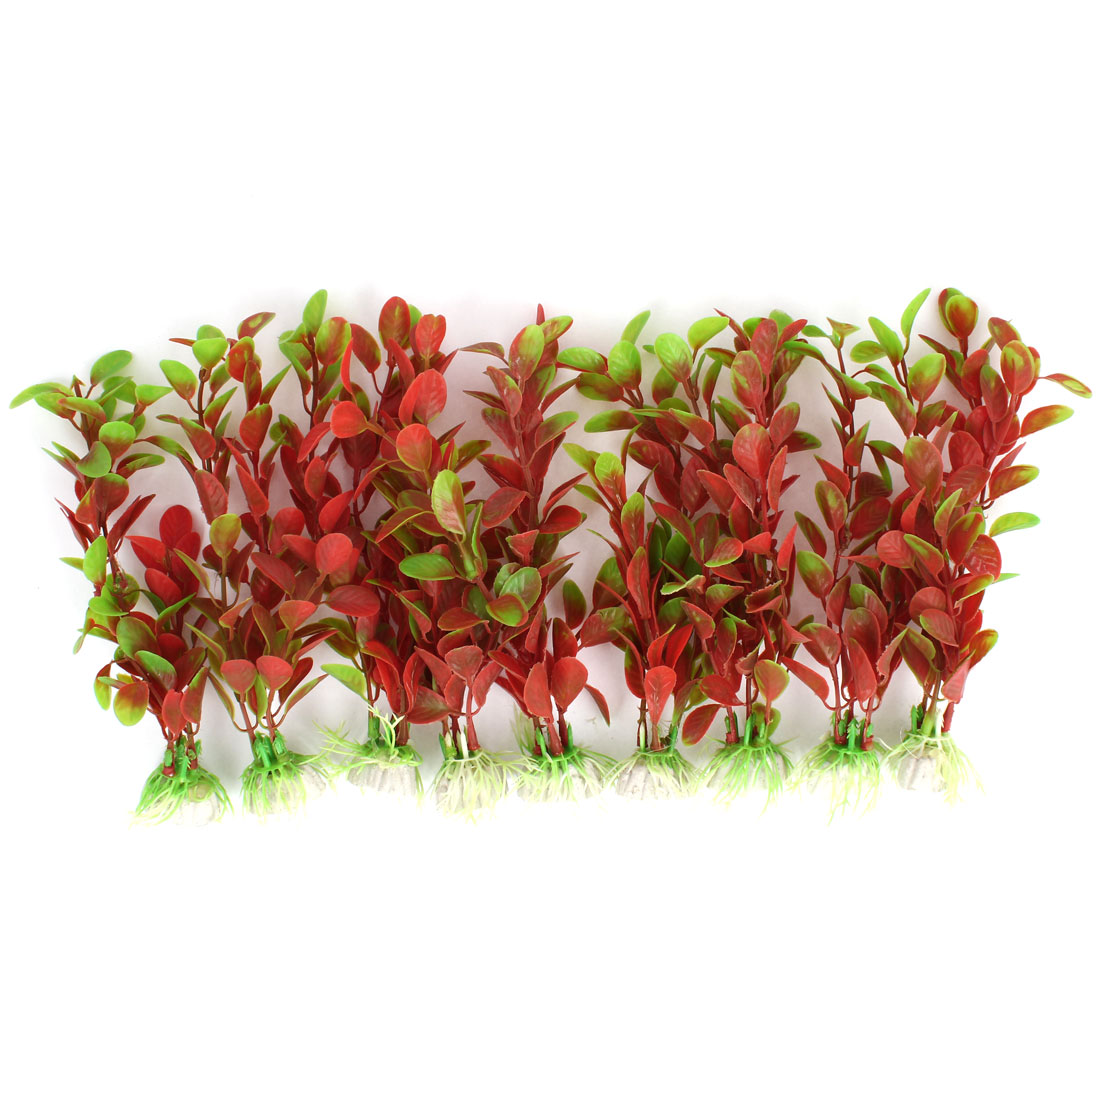 "Aquarium Fish Tank Landscaping Artificial Emulational Underwater Water Plant Grass Decor Fuchsia Green 7.3"" Height 9pcs"